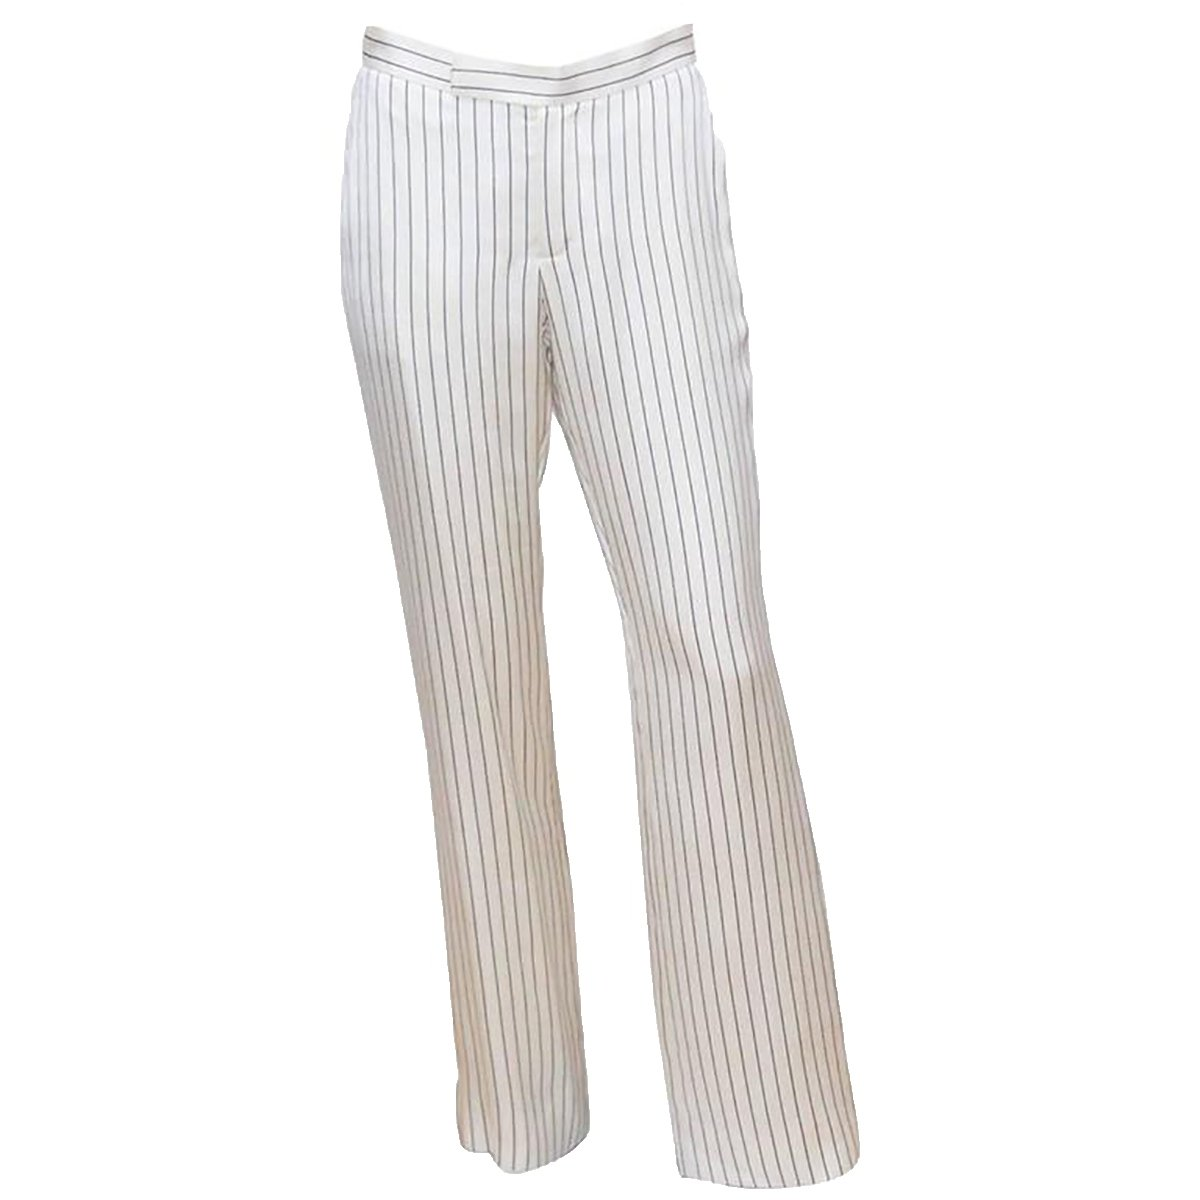 Lauren by Ralph Lauren Women's Pinstriped Twill Skinny Pants (10, White/Black)